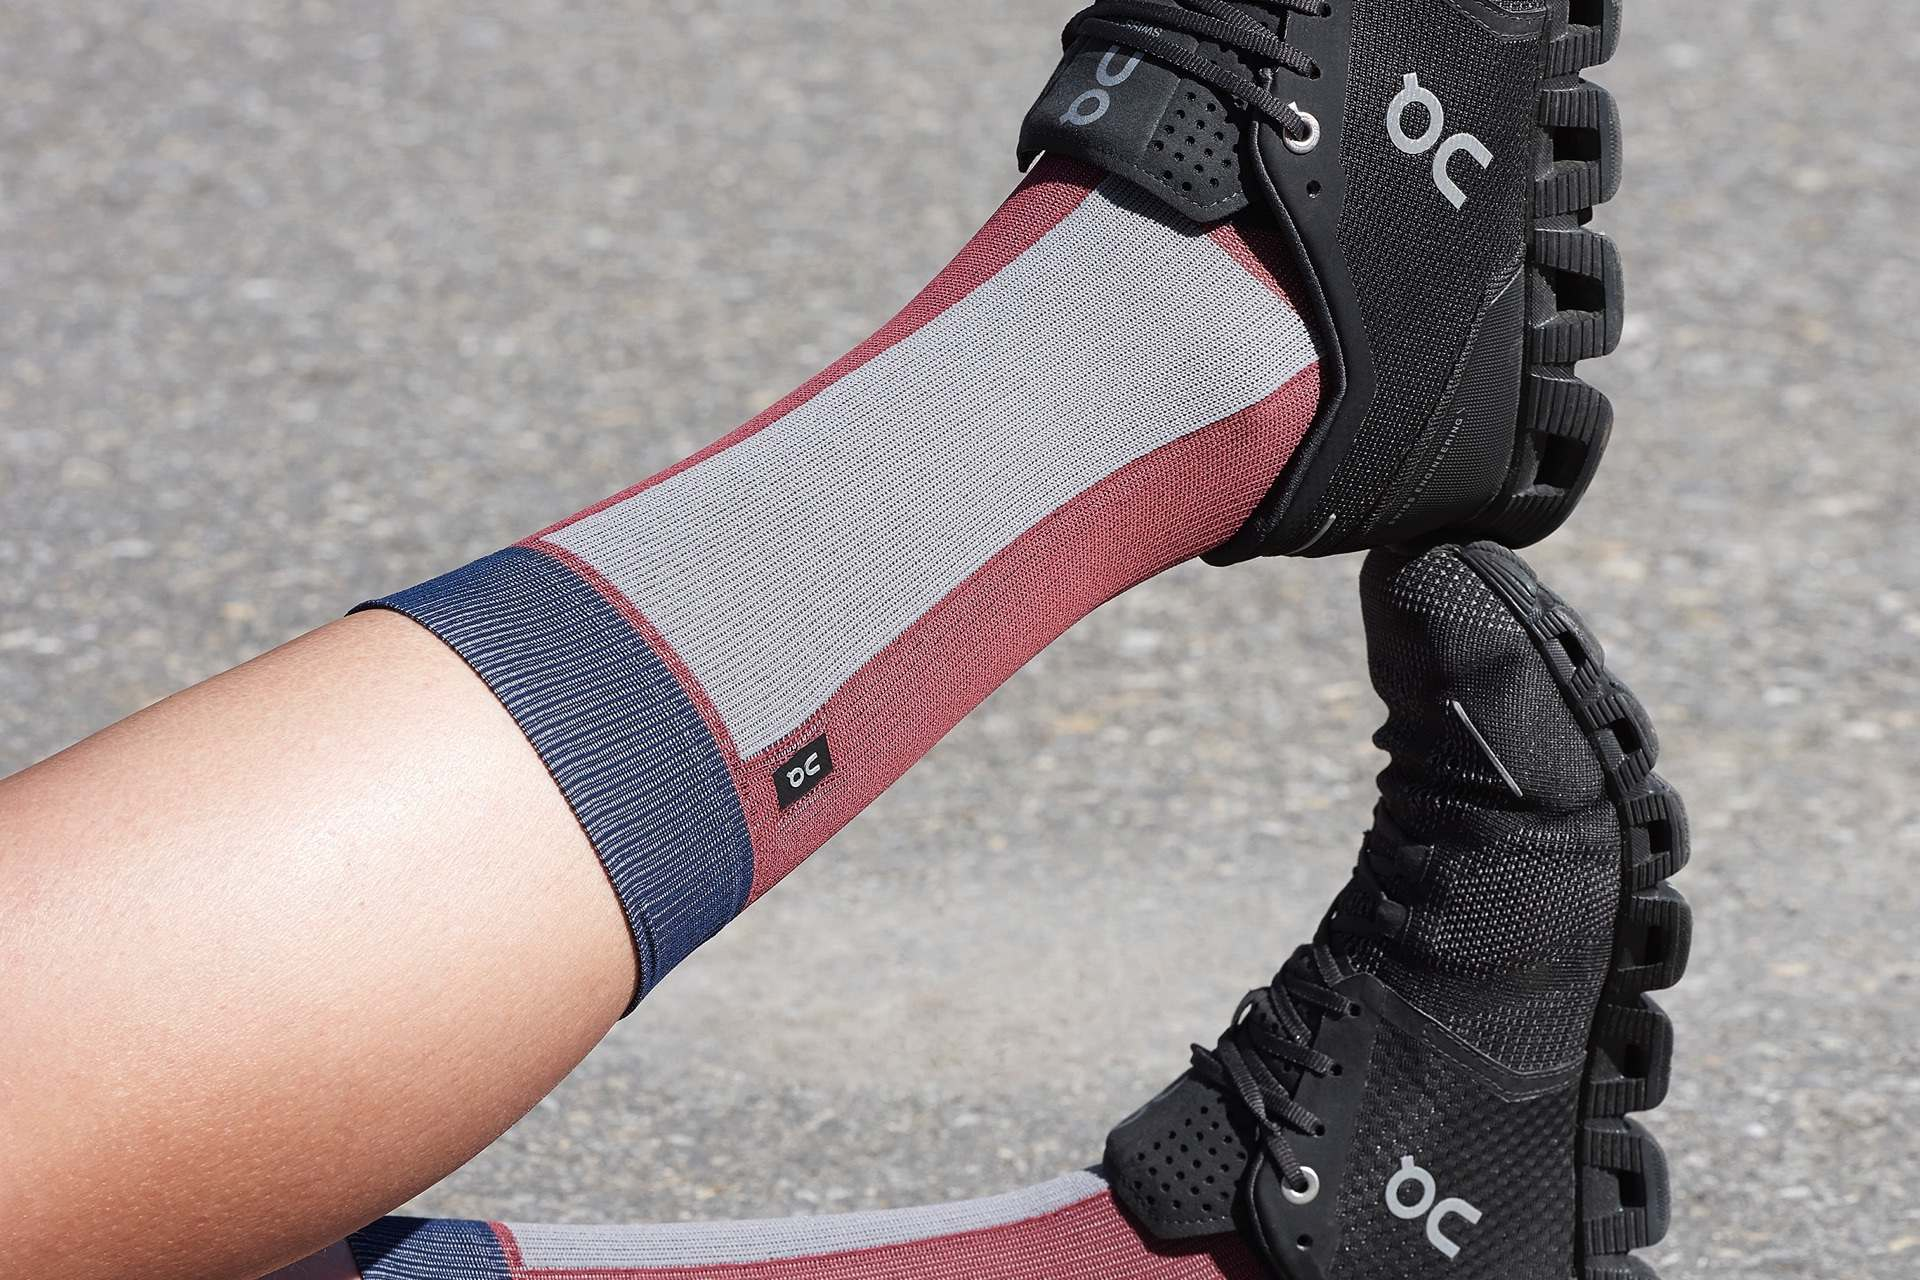 335f444951b These ventilating panels help keep foot temperature in perfect balance.  Cooling when things heat up